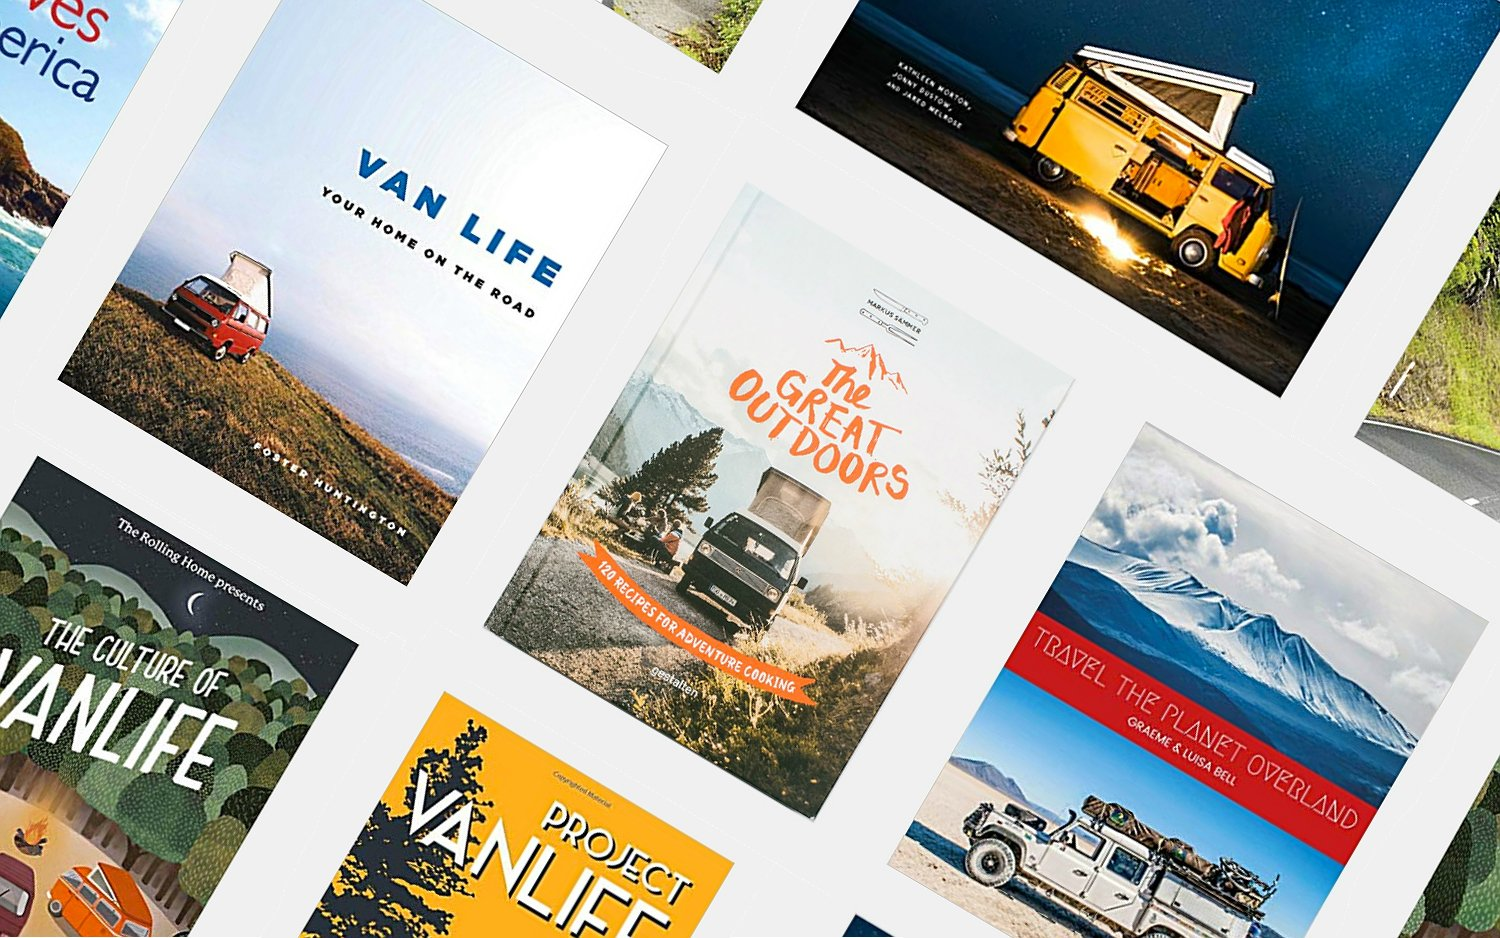 Best Van Life Books